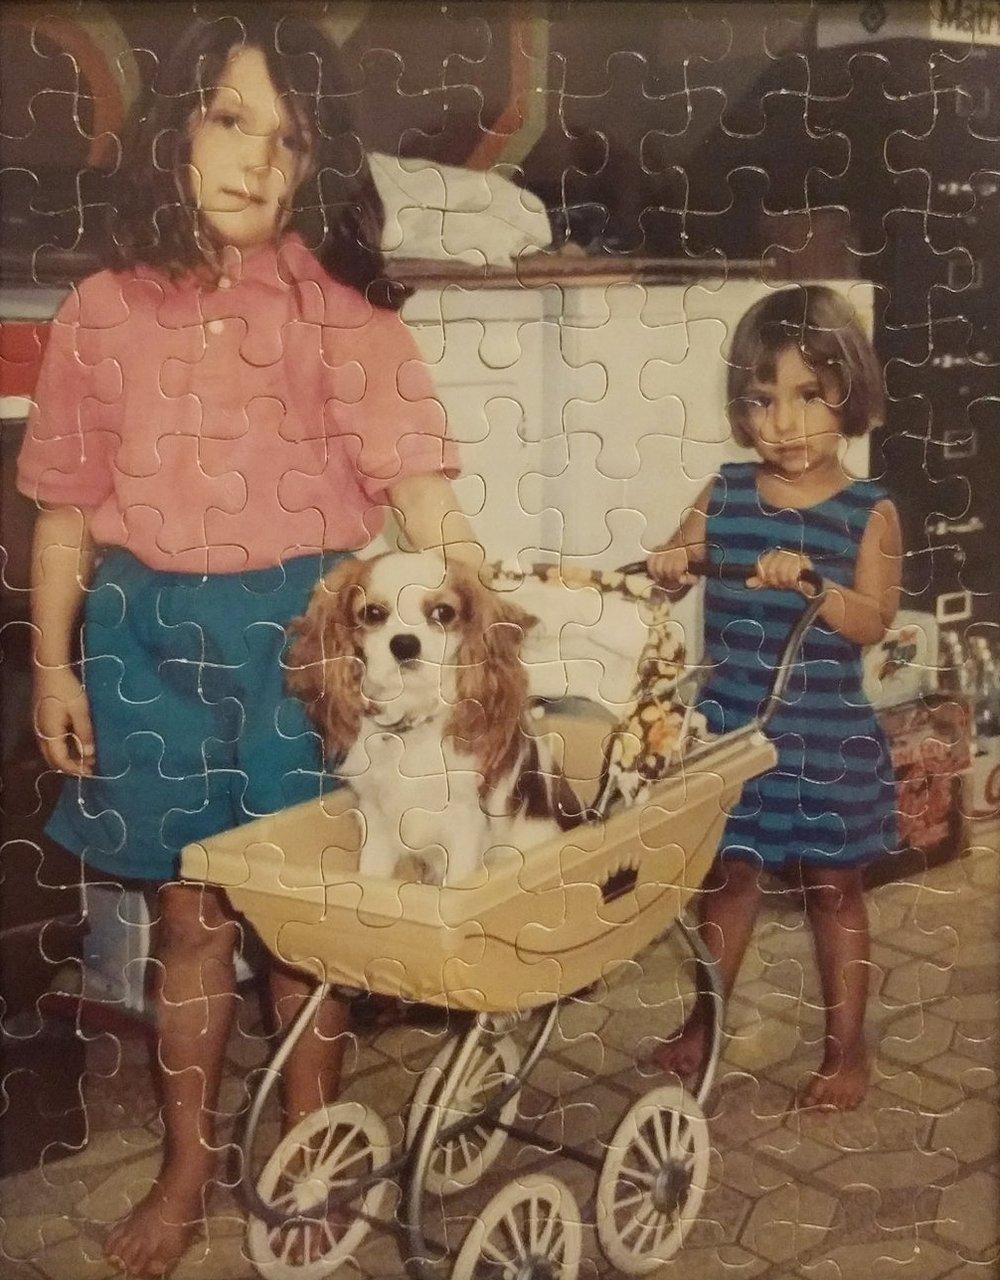 Dr. Rathjens (left) with her childhood dog, Rudy, and younger sister. Yes, this is indeed a picture puzzle. Very 90s.